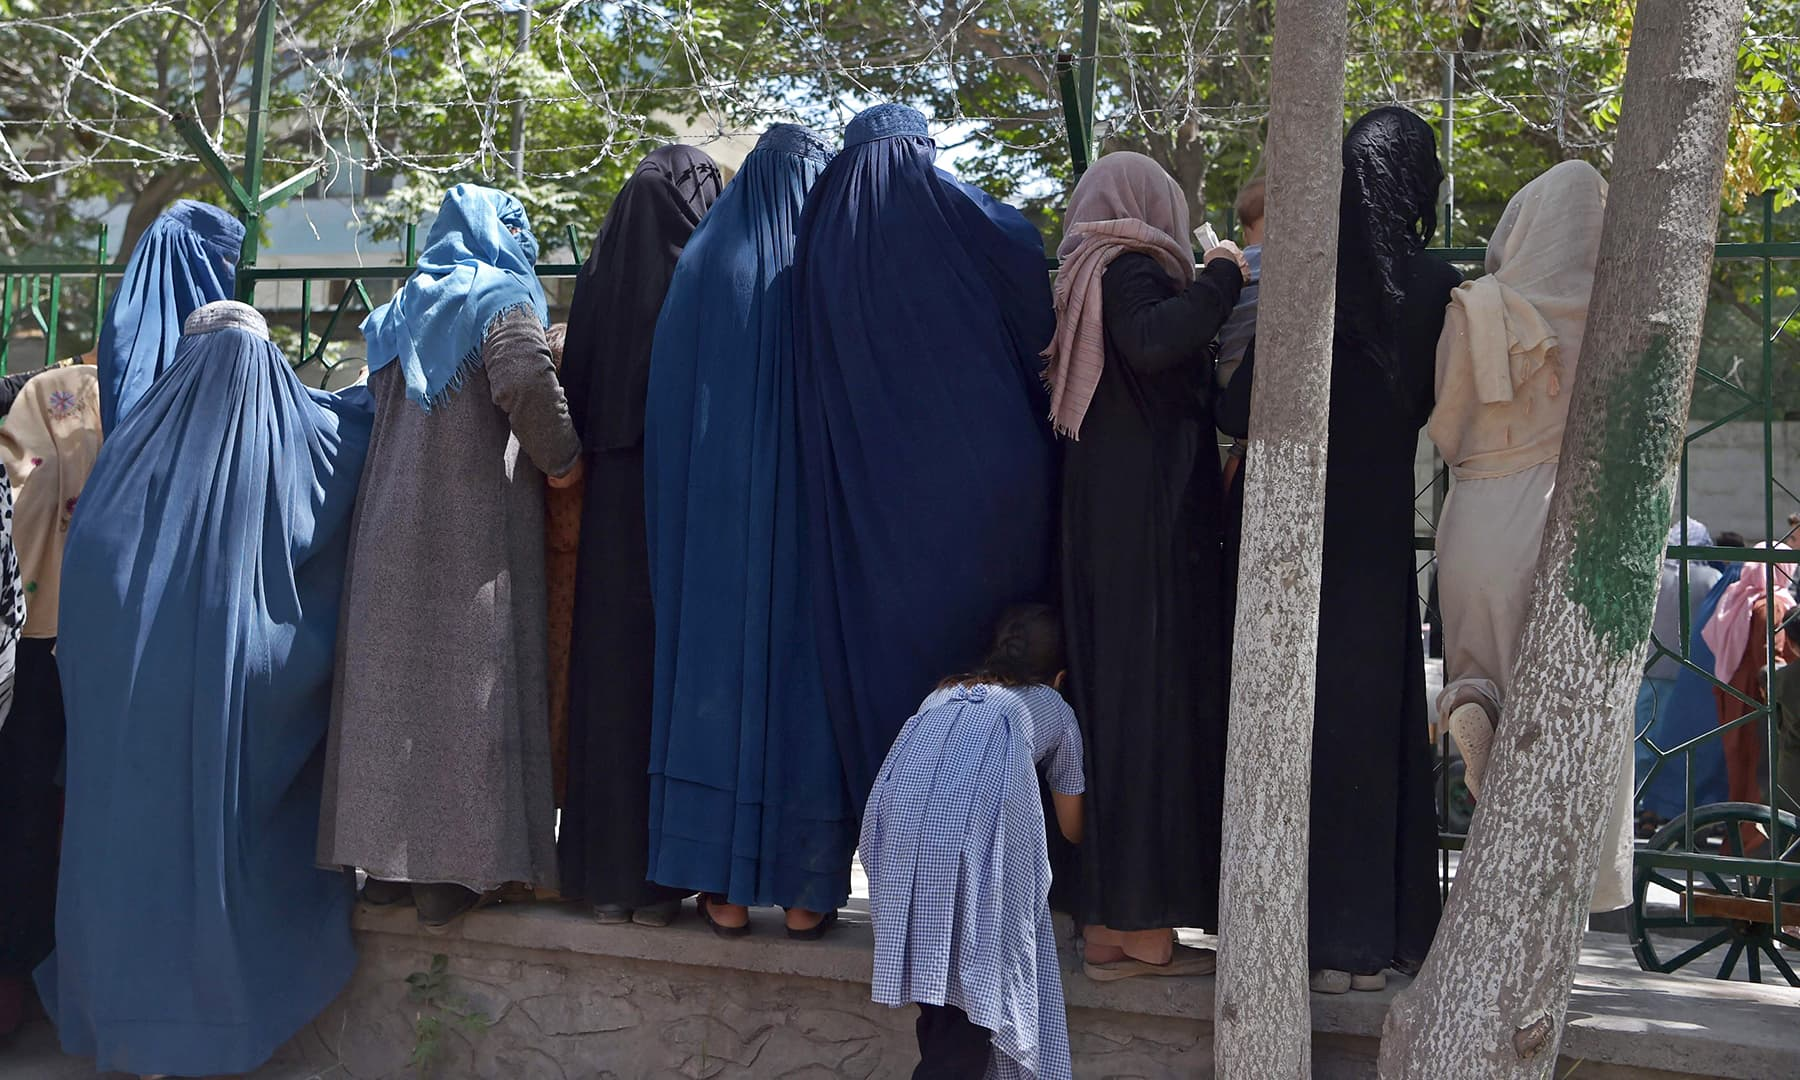 Internally displaced Afghan women, who fled from the northern province due to battles between the Taliban and Afghan security forces, gather to receive free food being distributed at Shahr-e-Naw Park in Kabul on August 13. — AFP